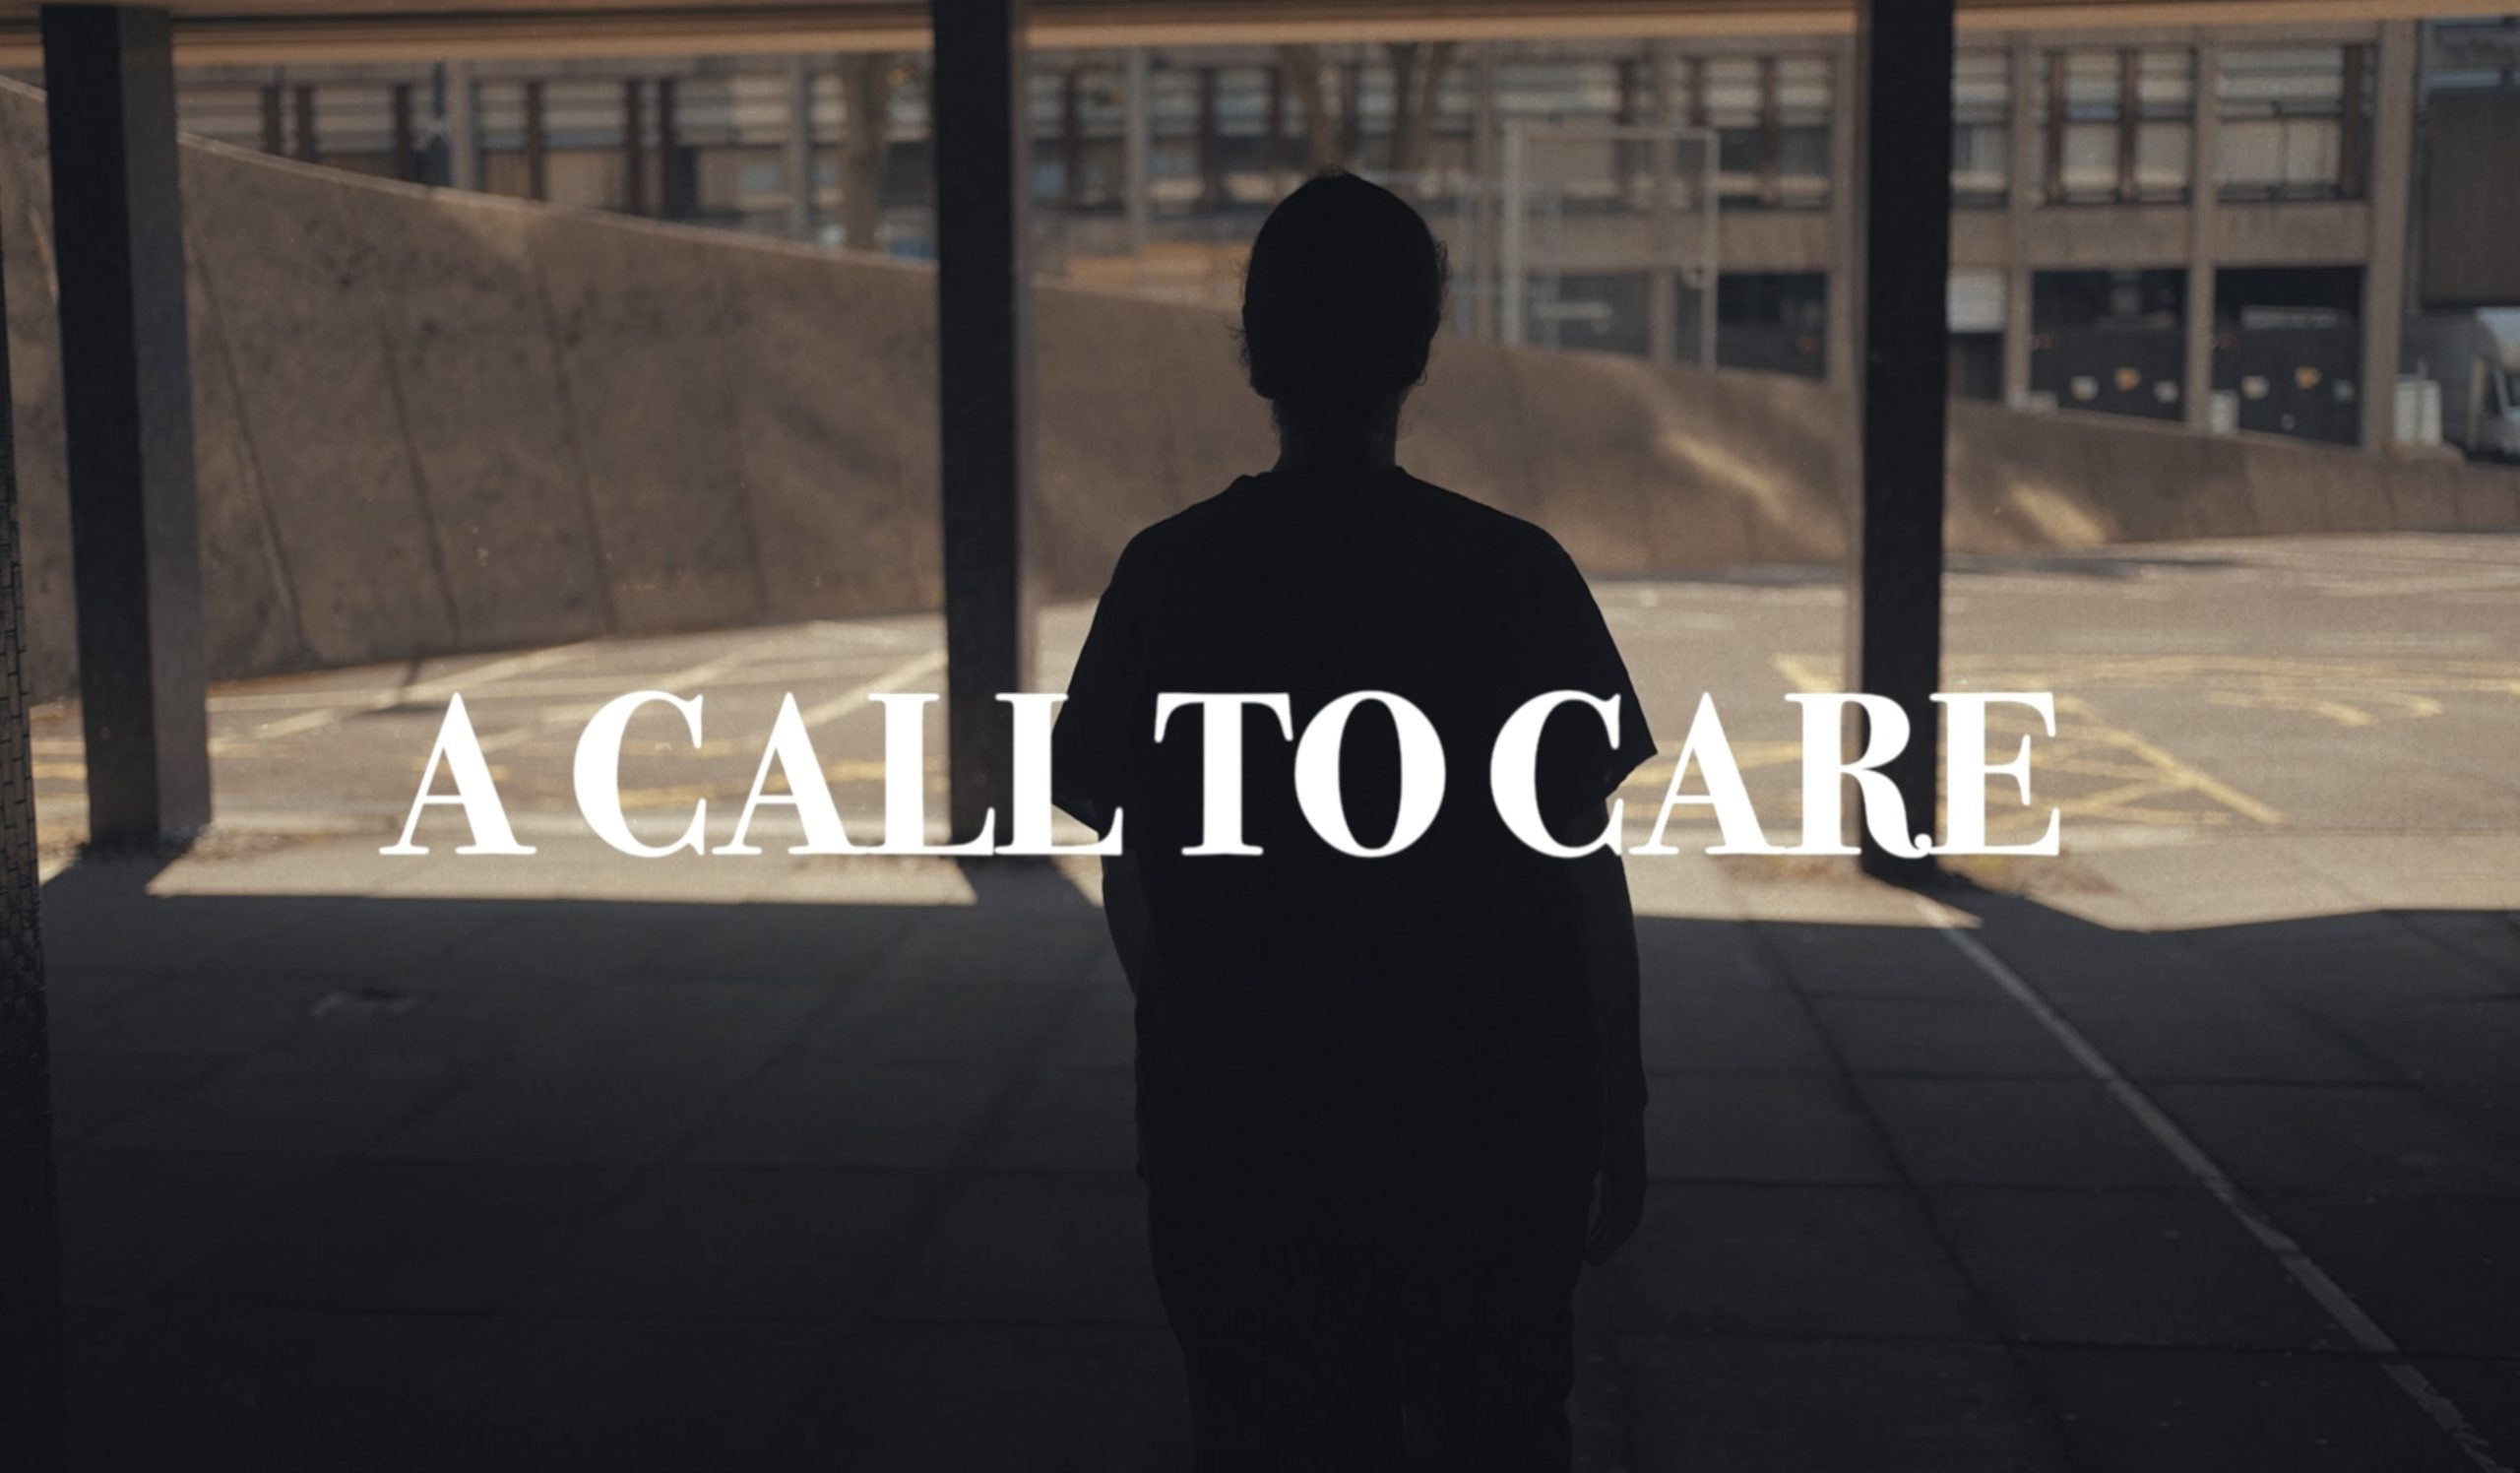 You are currently viewing Making A Call to Care